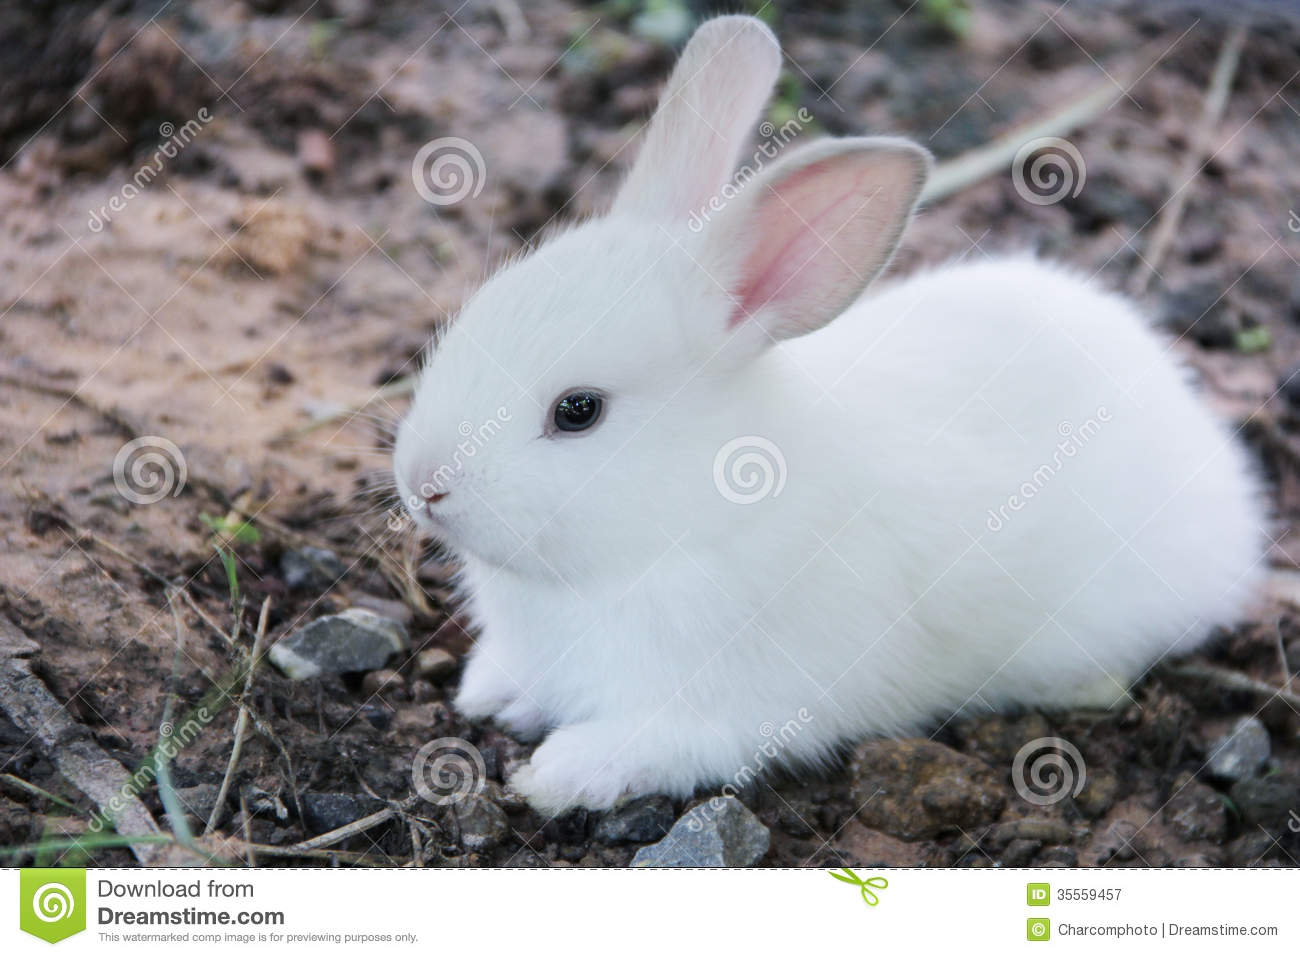 Rabit Royalty Free Stock Photography - Image: 35559457